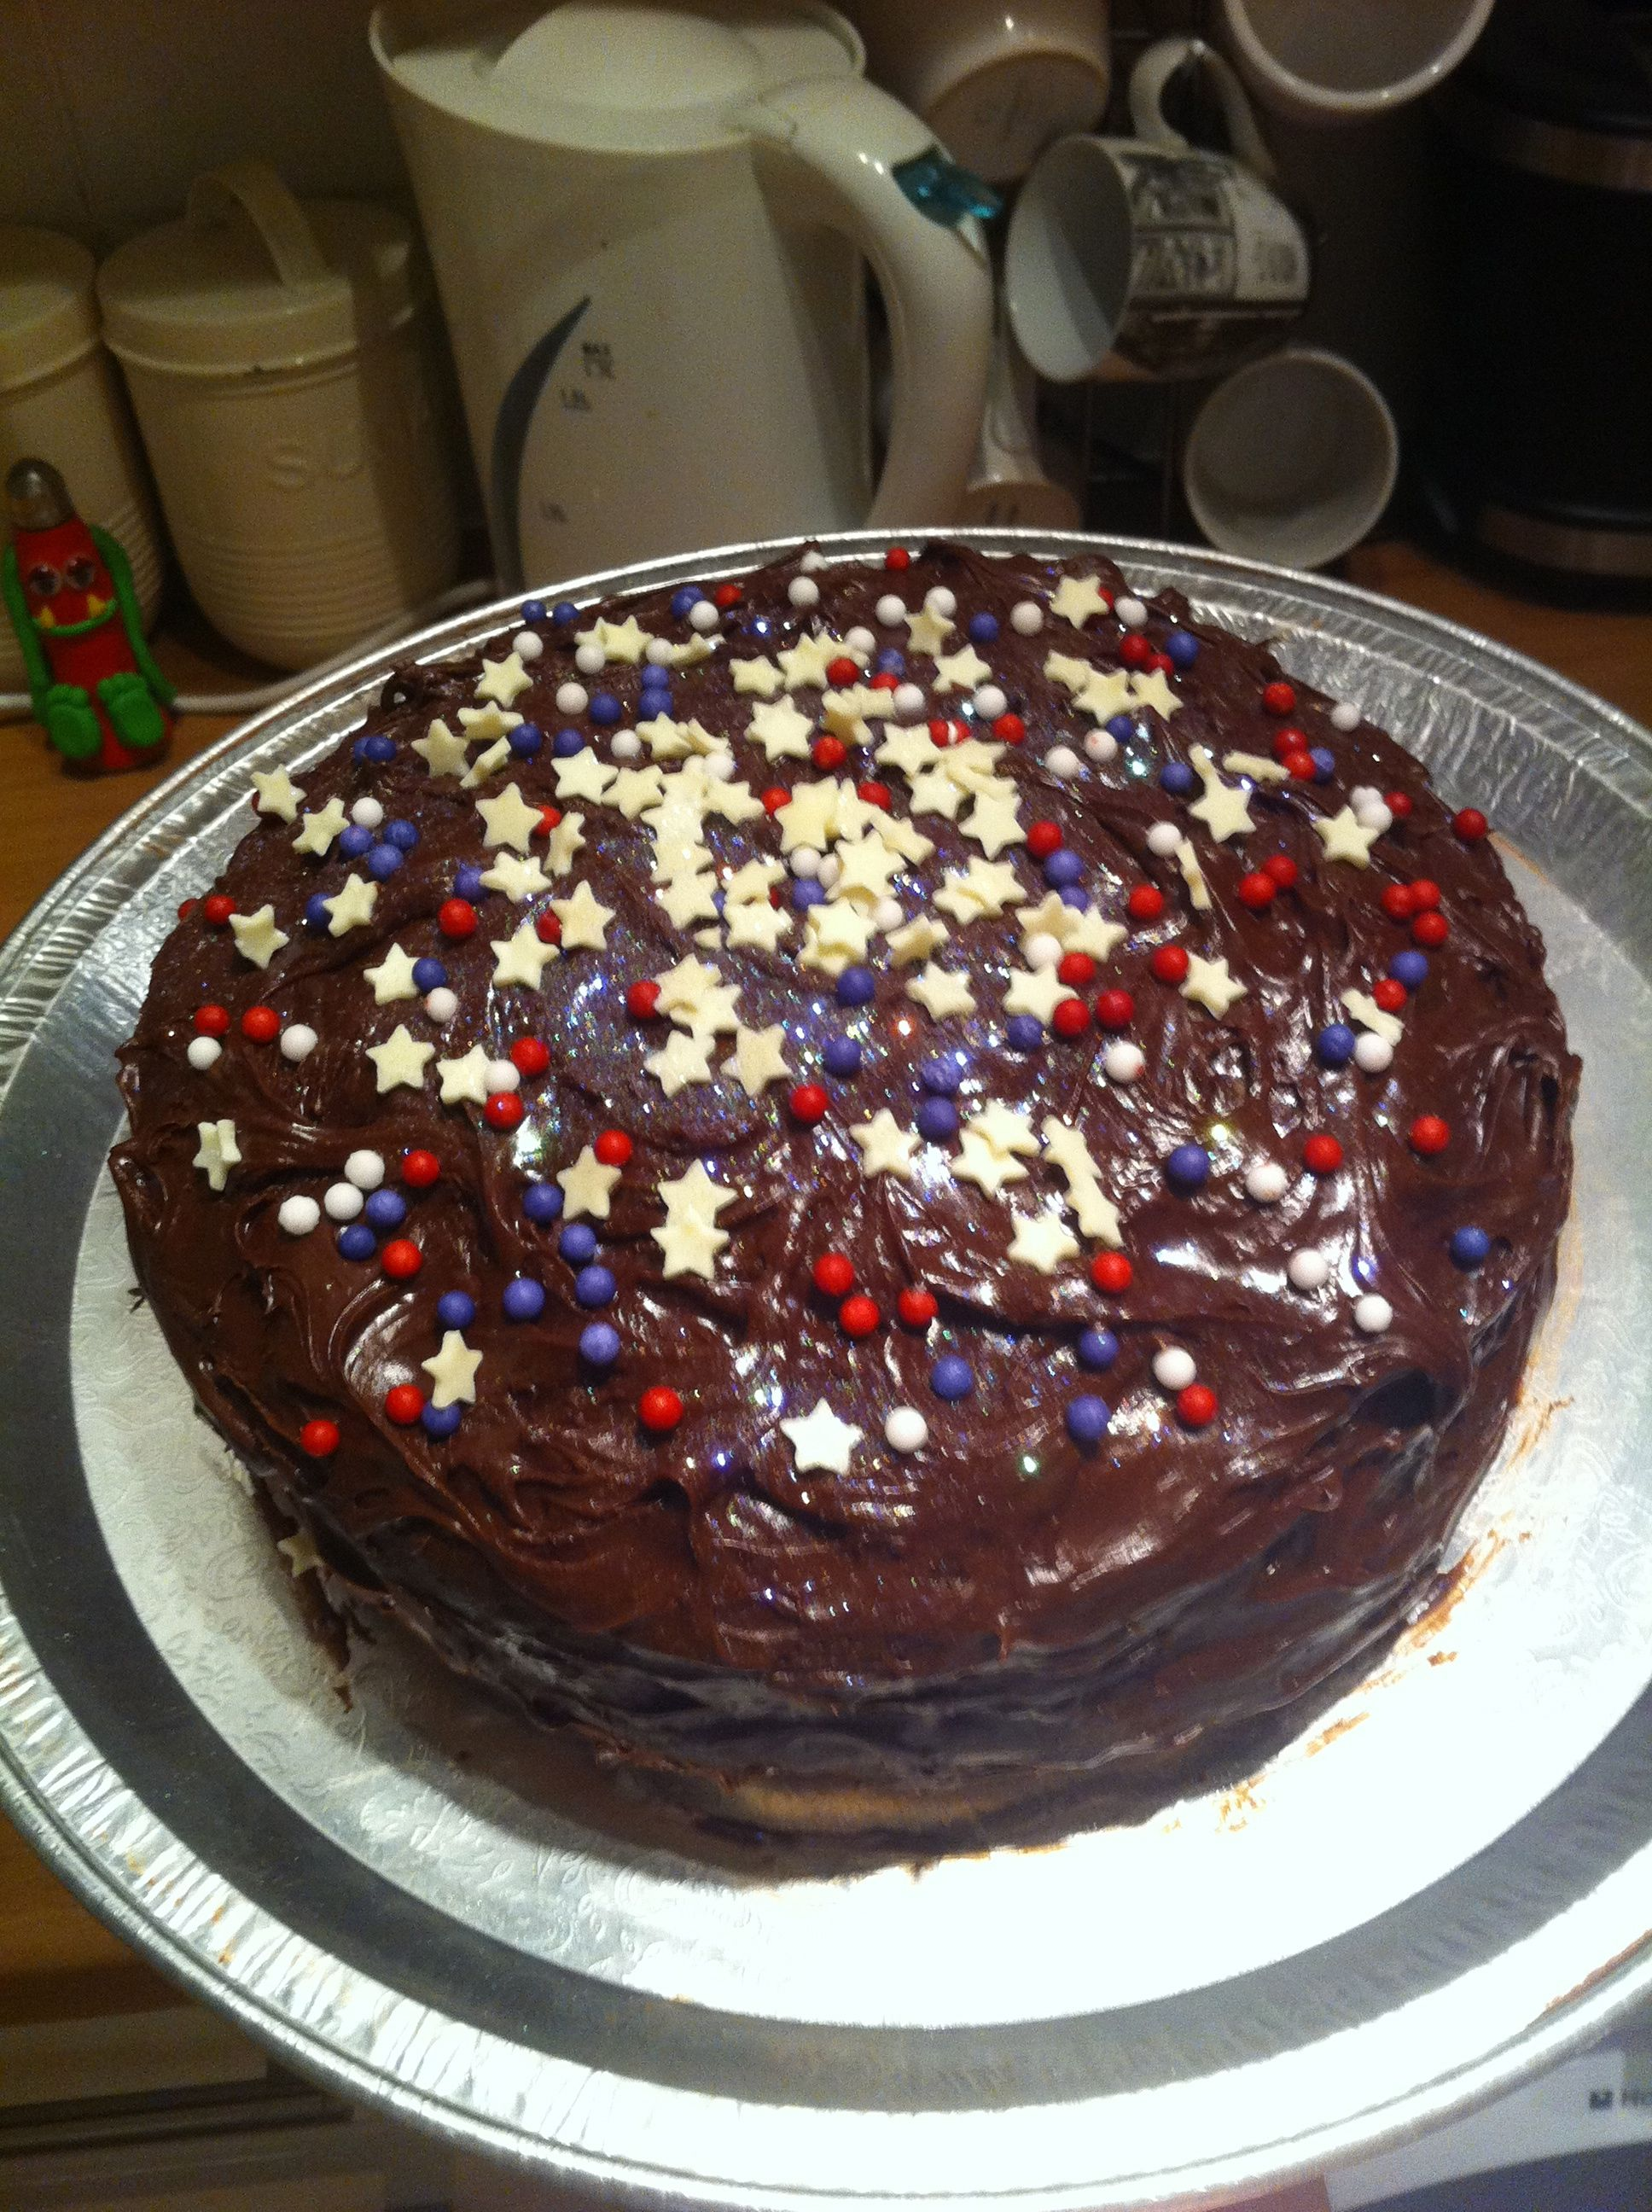 Classic Betty Crocker (cheating!) Devil's Food Cake with Chocolate Fudge Icing, White Chocolate Stars, Blue and Red Sugar Balls and most importantly lots of edible GLITTER!! Gluttony in it's most fabulous